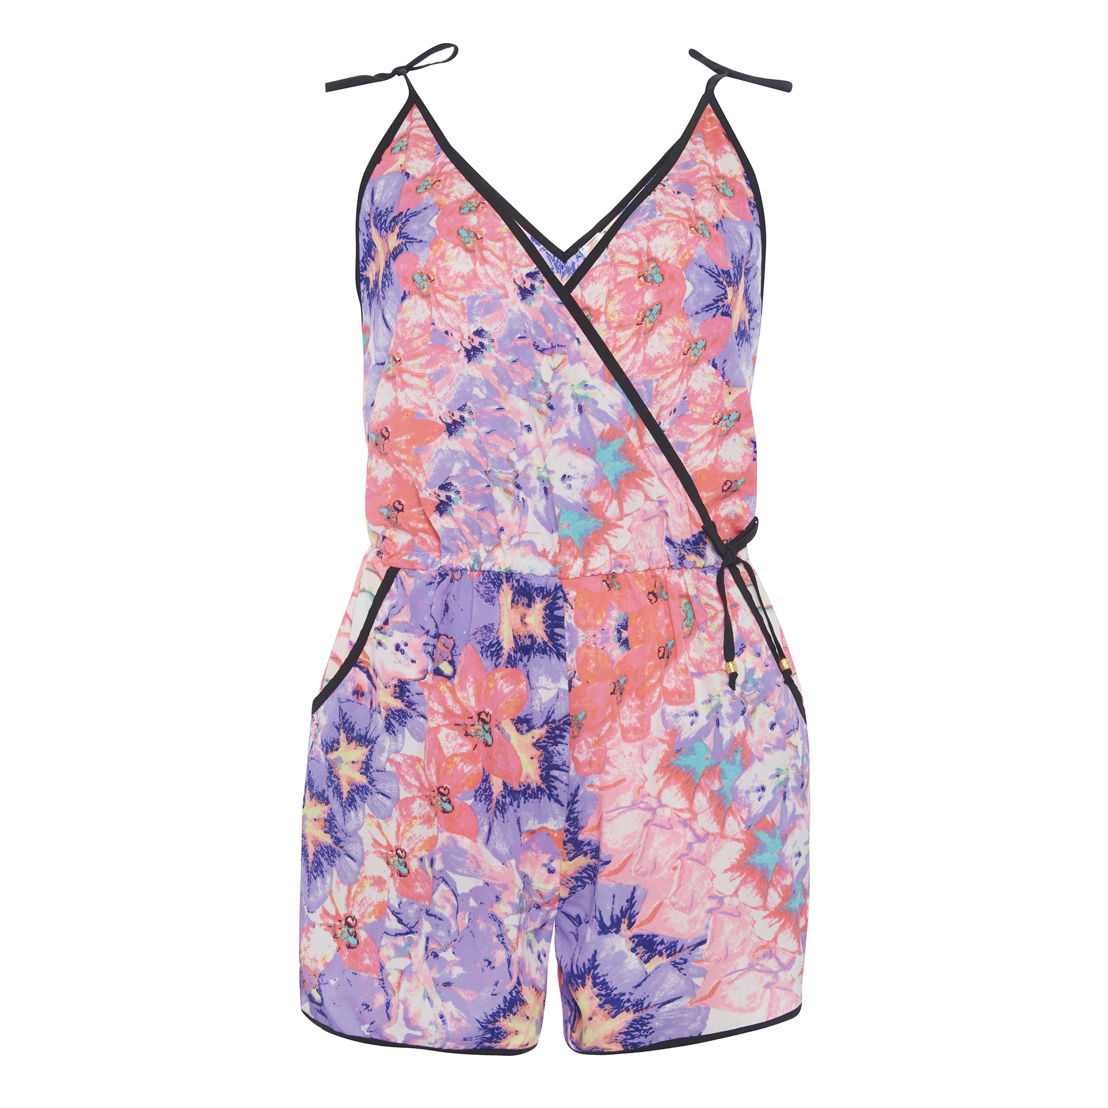 Mirrored floral print beach playsuit, €9